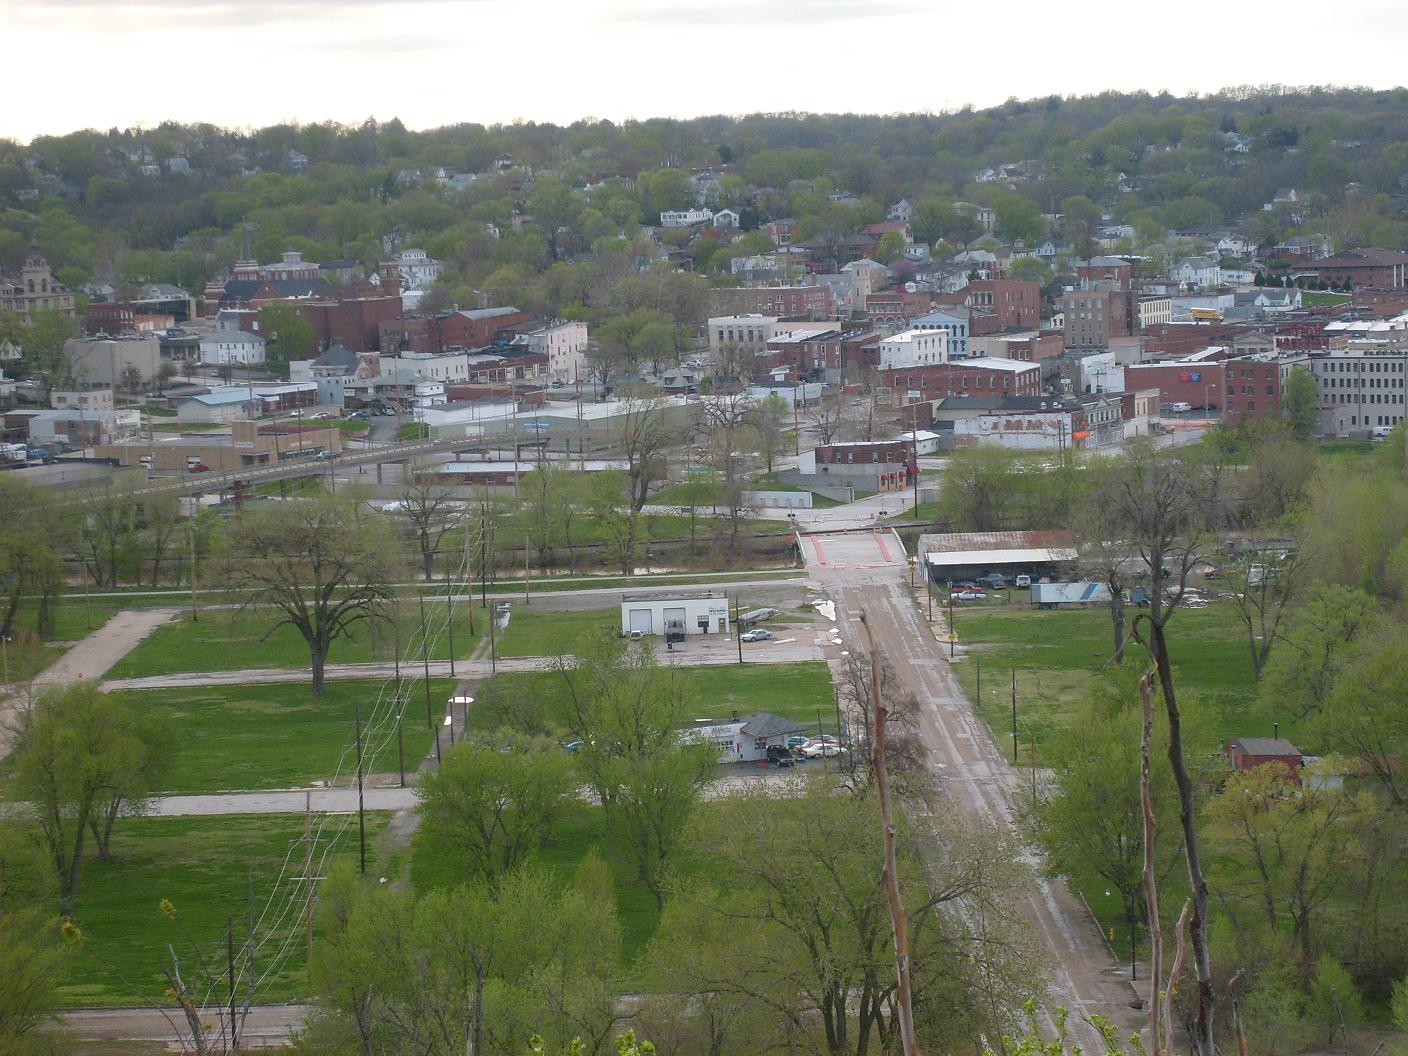 missouri city Latest local news for missouri city, mo : local news for missouri city, mo continually updated from thousands of sources on the web.